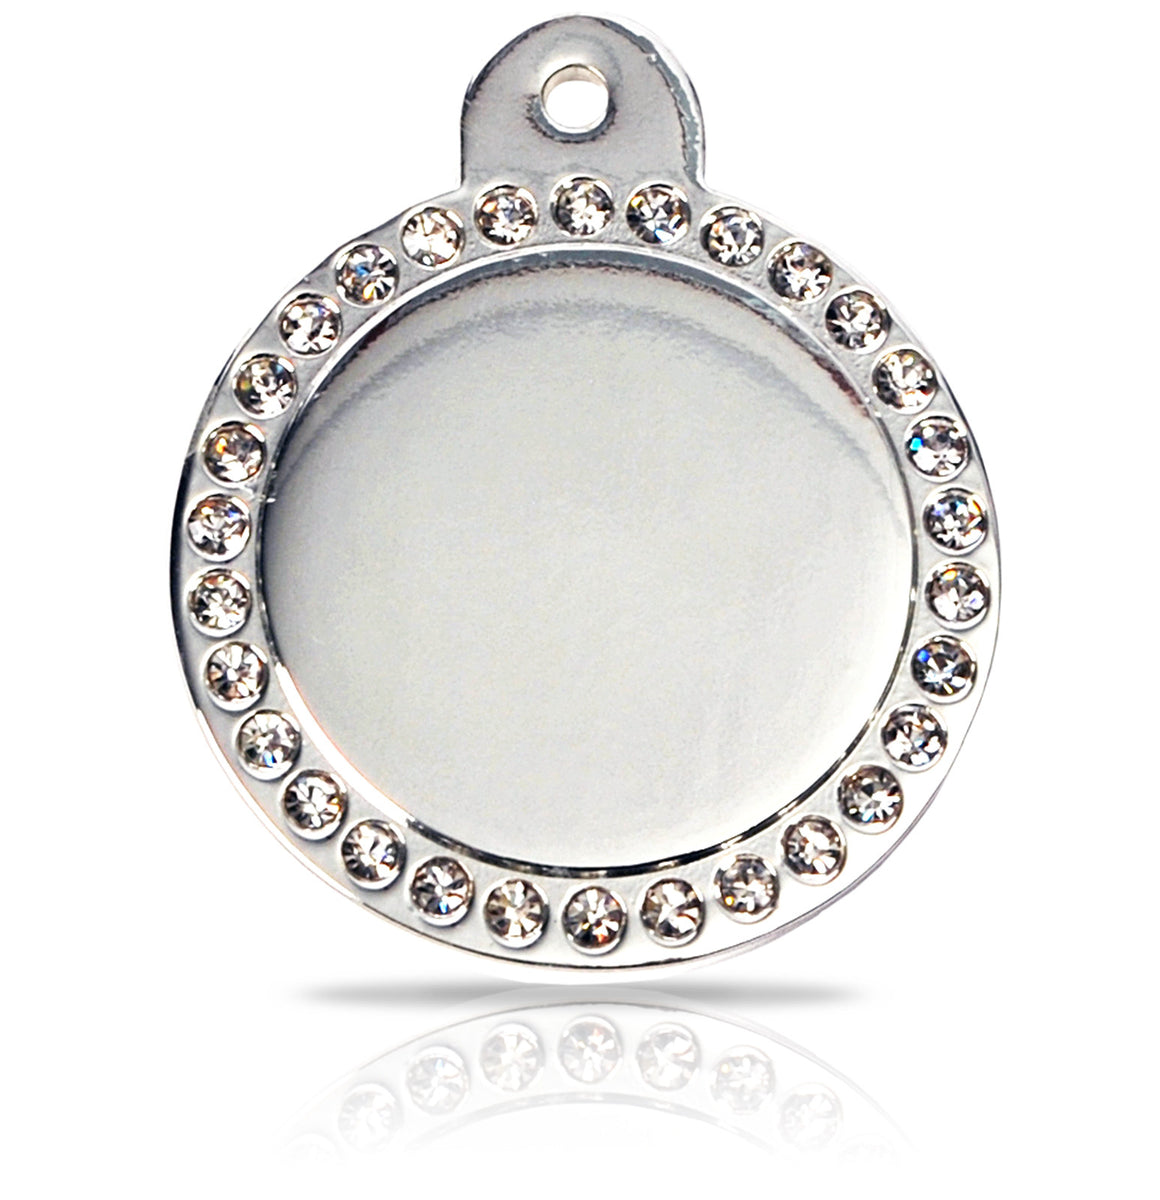 TaggIT Glamour Large Disc Silver Diamond iMarc Pet Tag